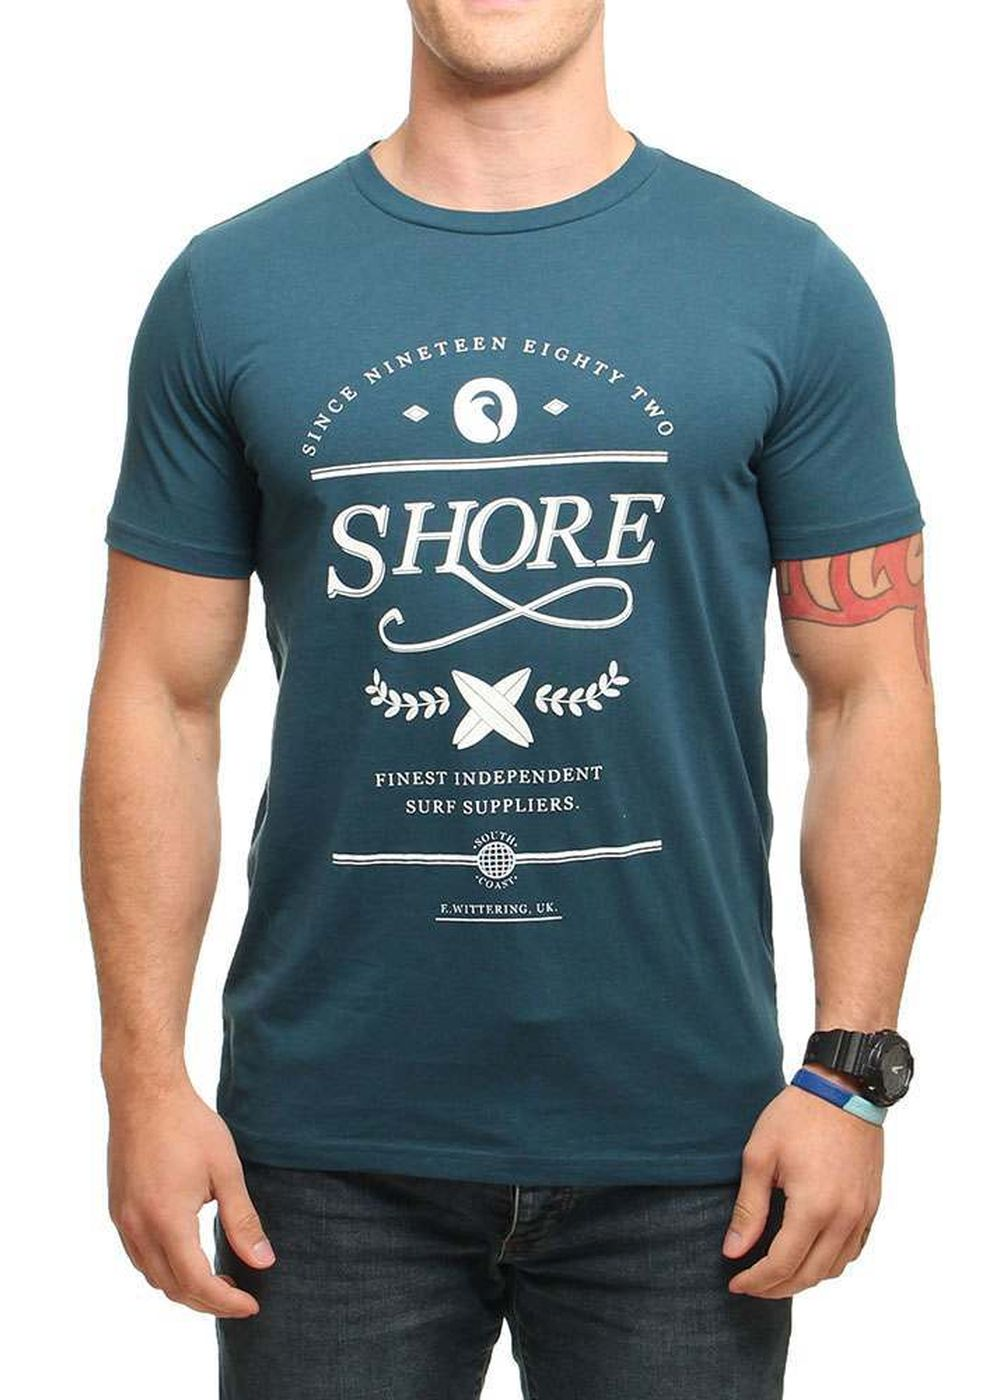 shore-classic-boards-tee-teal